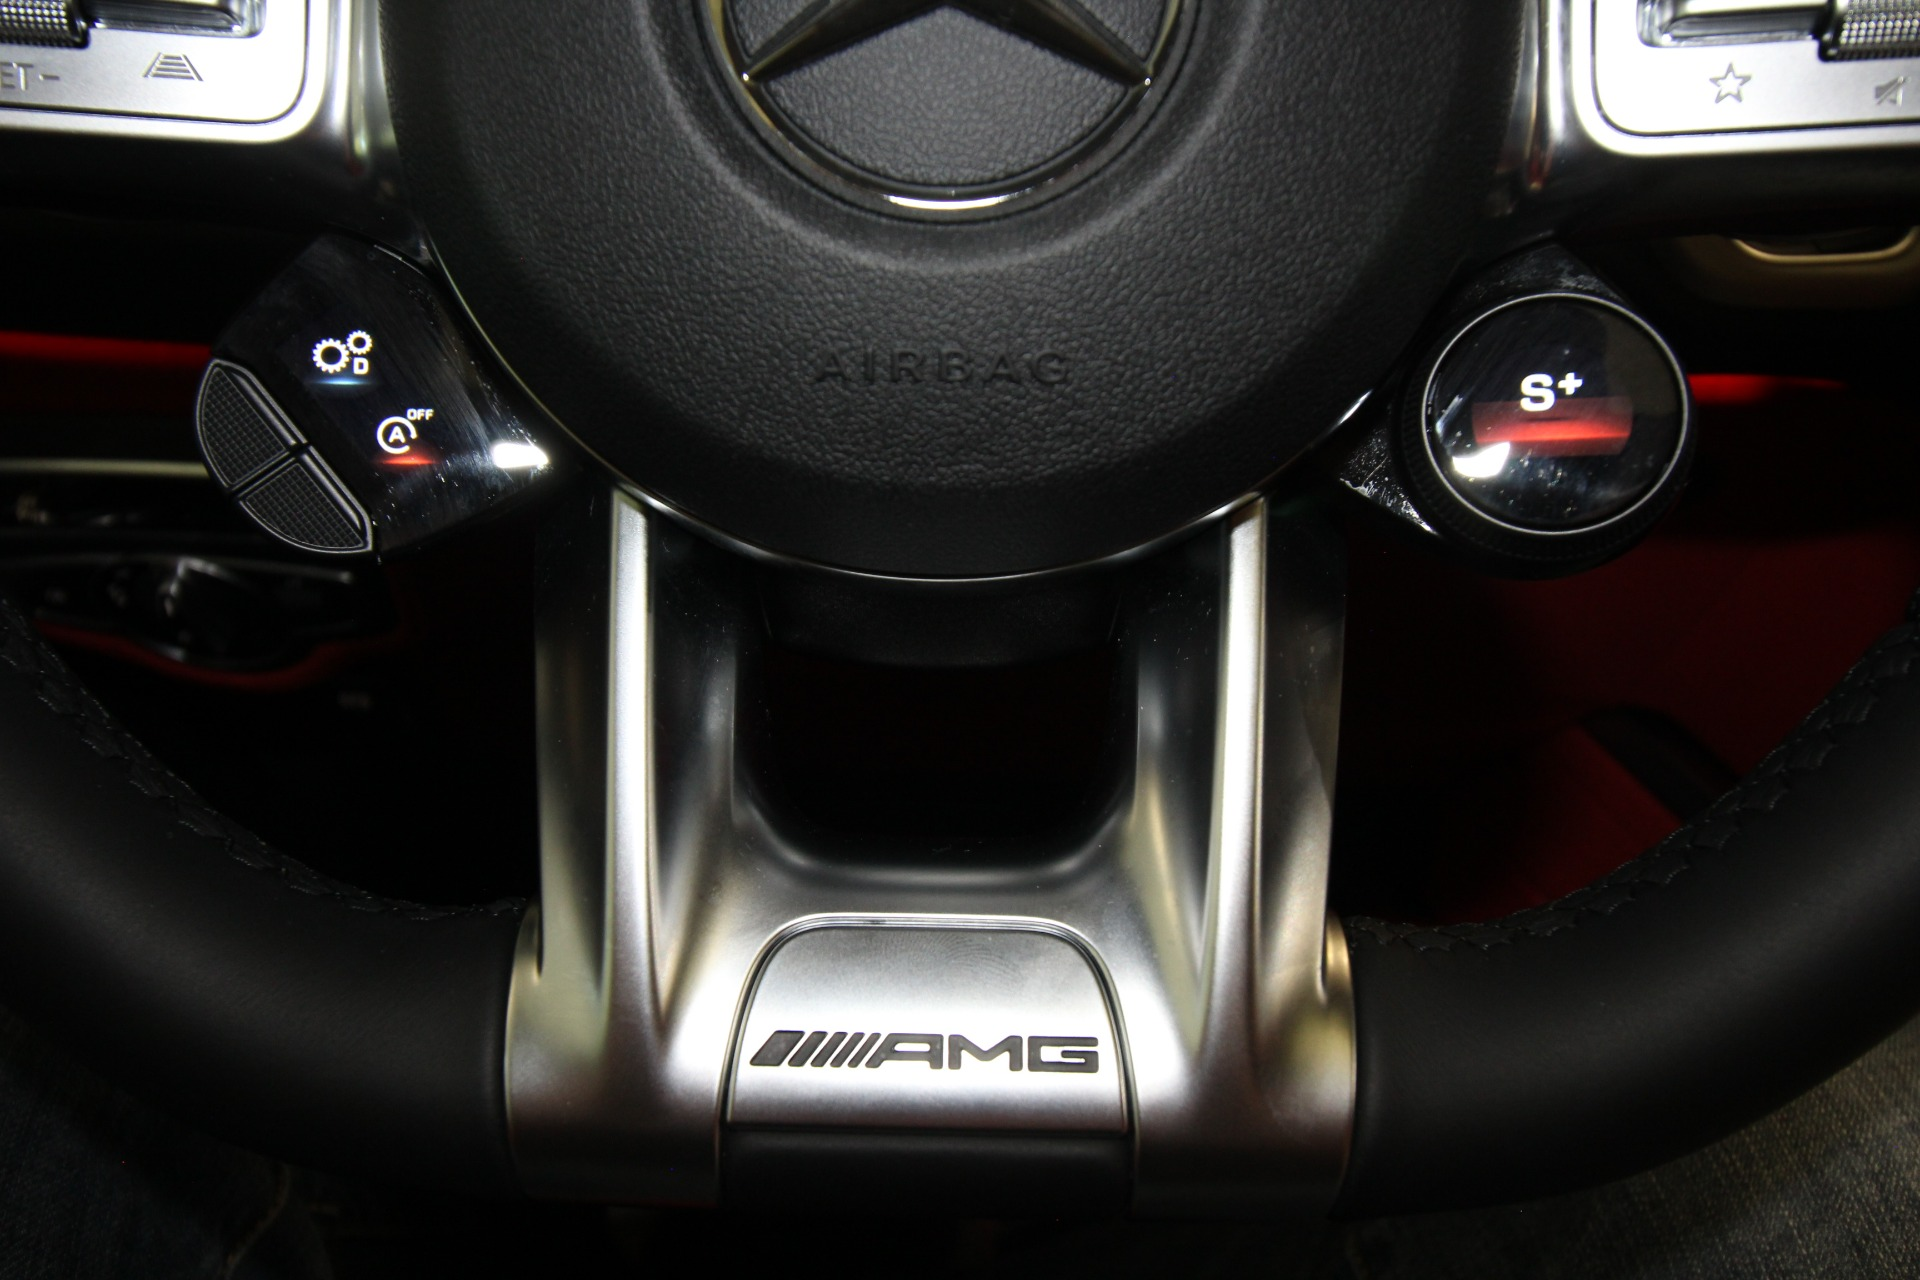 Used 2020 Mercedes-Benz G-Class G63 AMG 4MATIC   Albany, NY